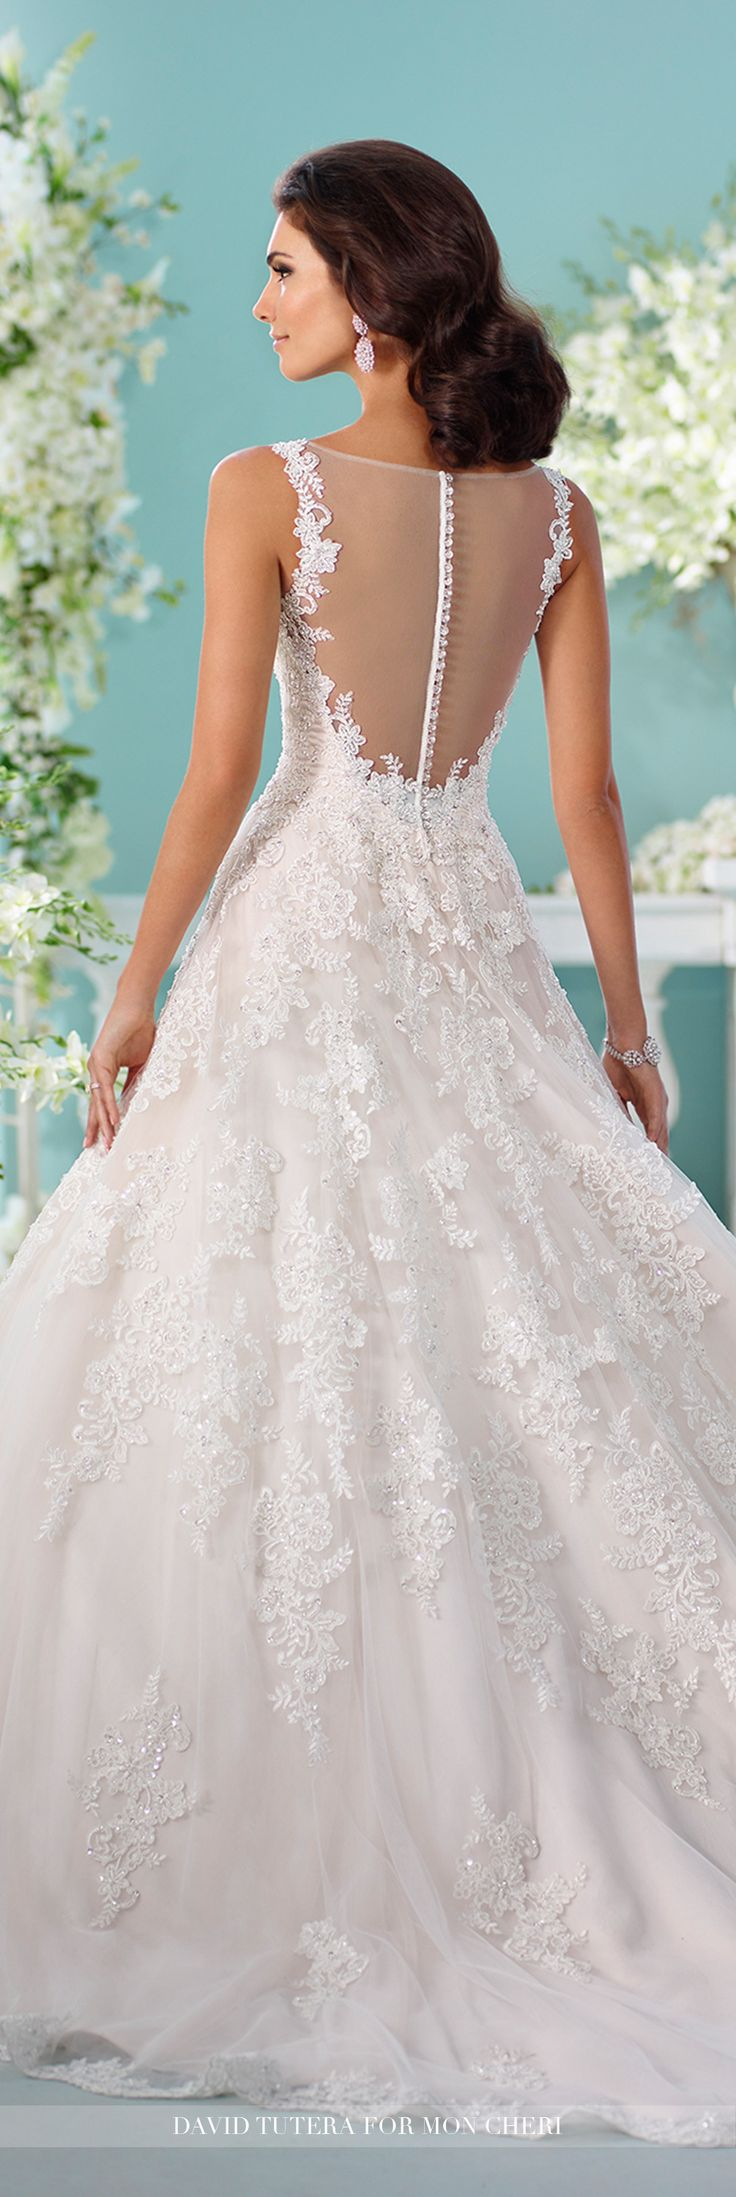 shoulder tulle over organza ball gown wedding dress with illusion